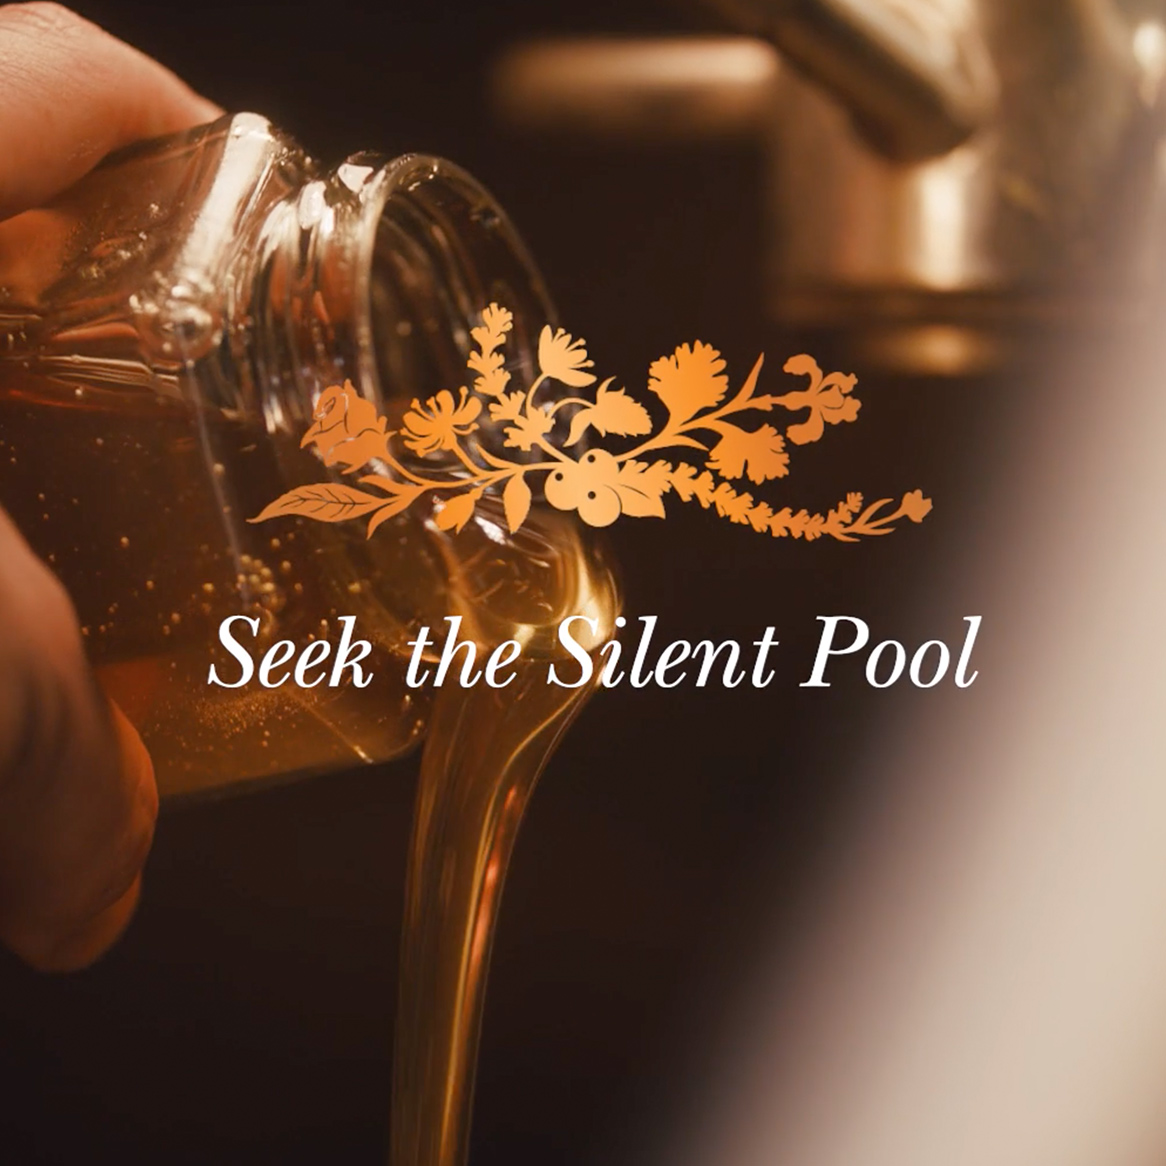 Silent pool honey